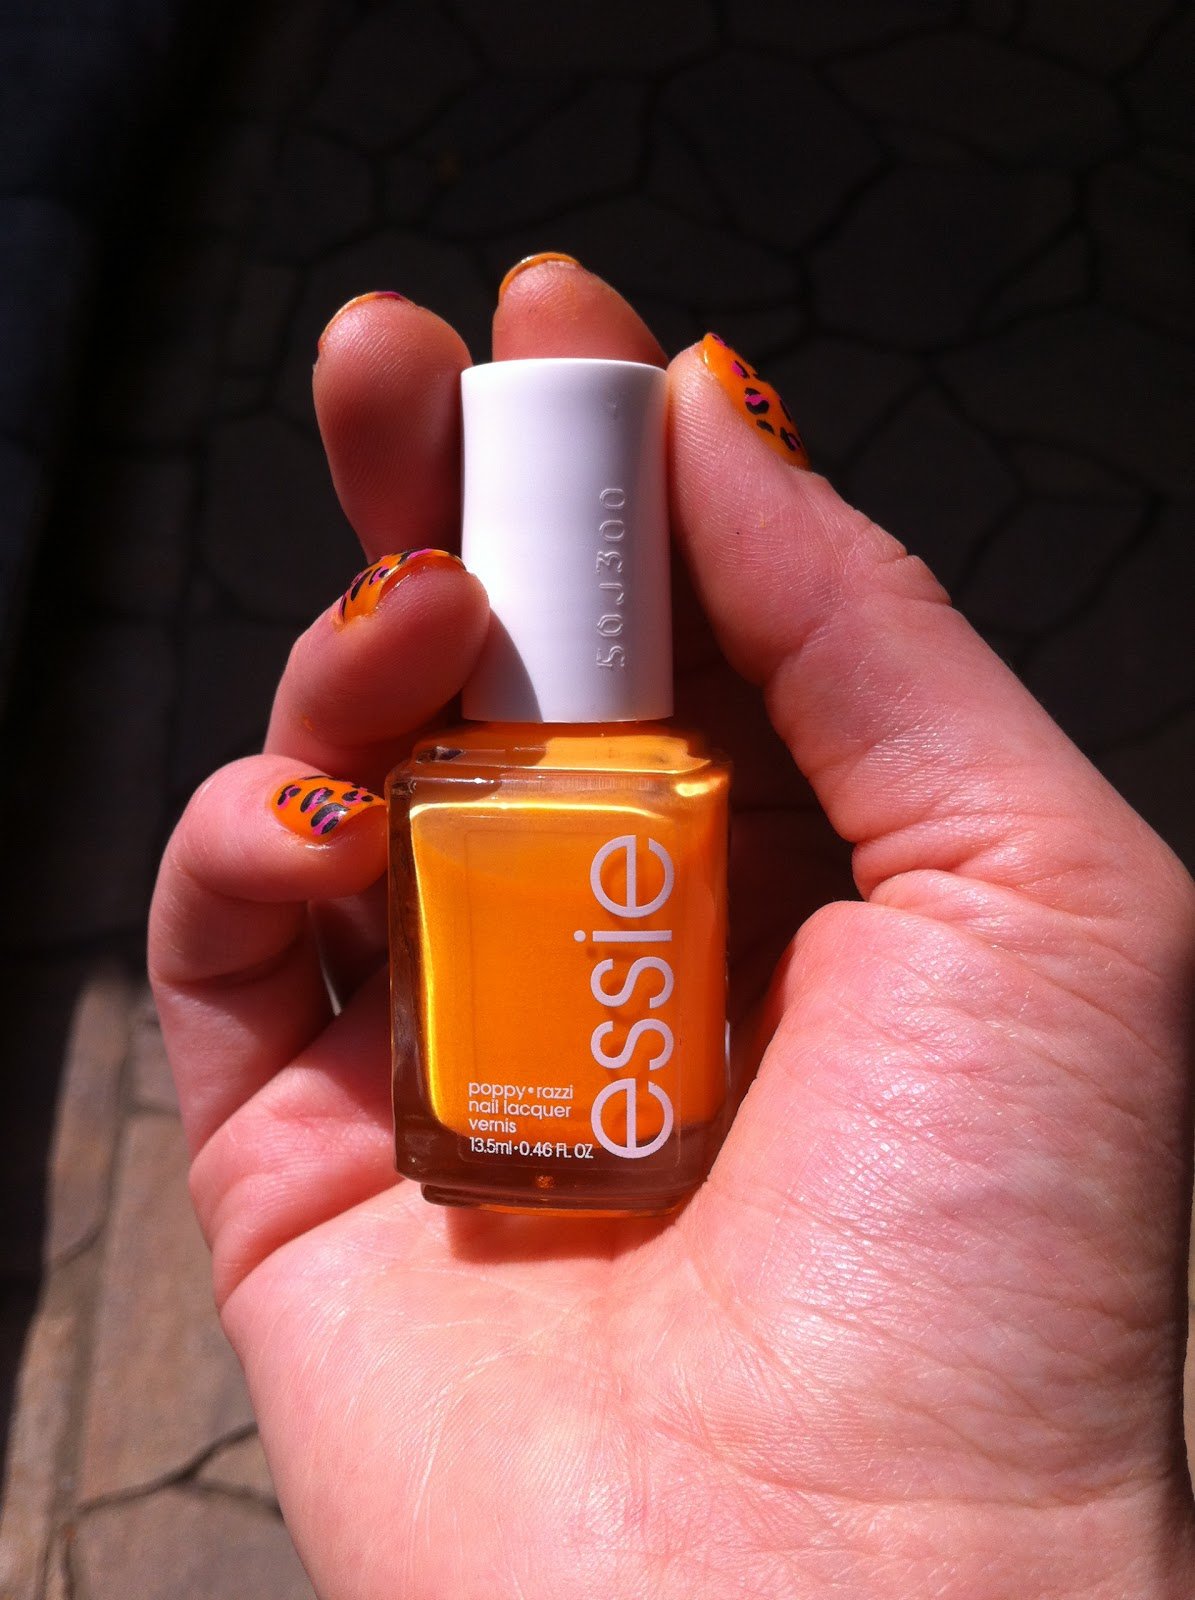 Poppy-razzi essie neons collection